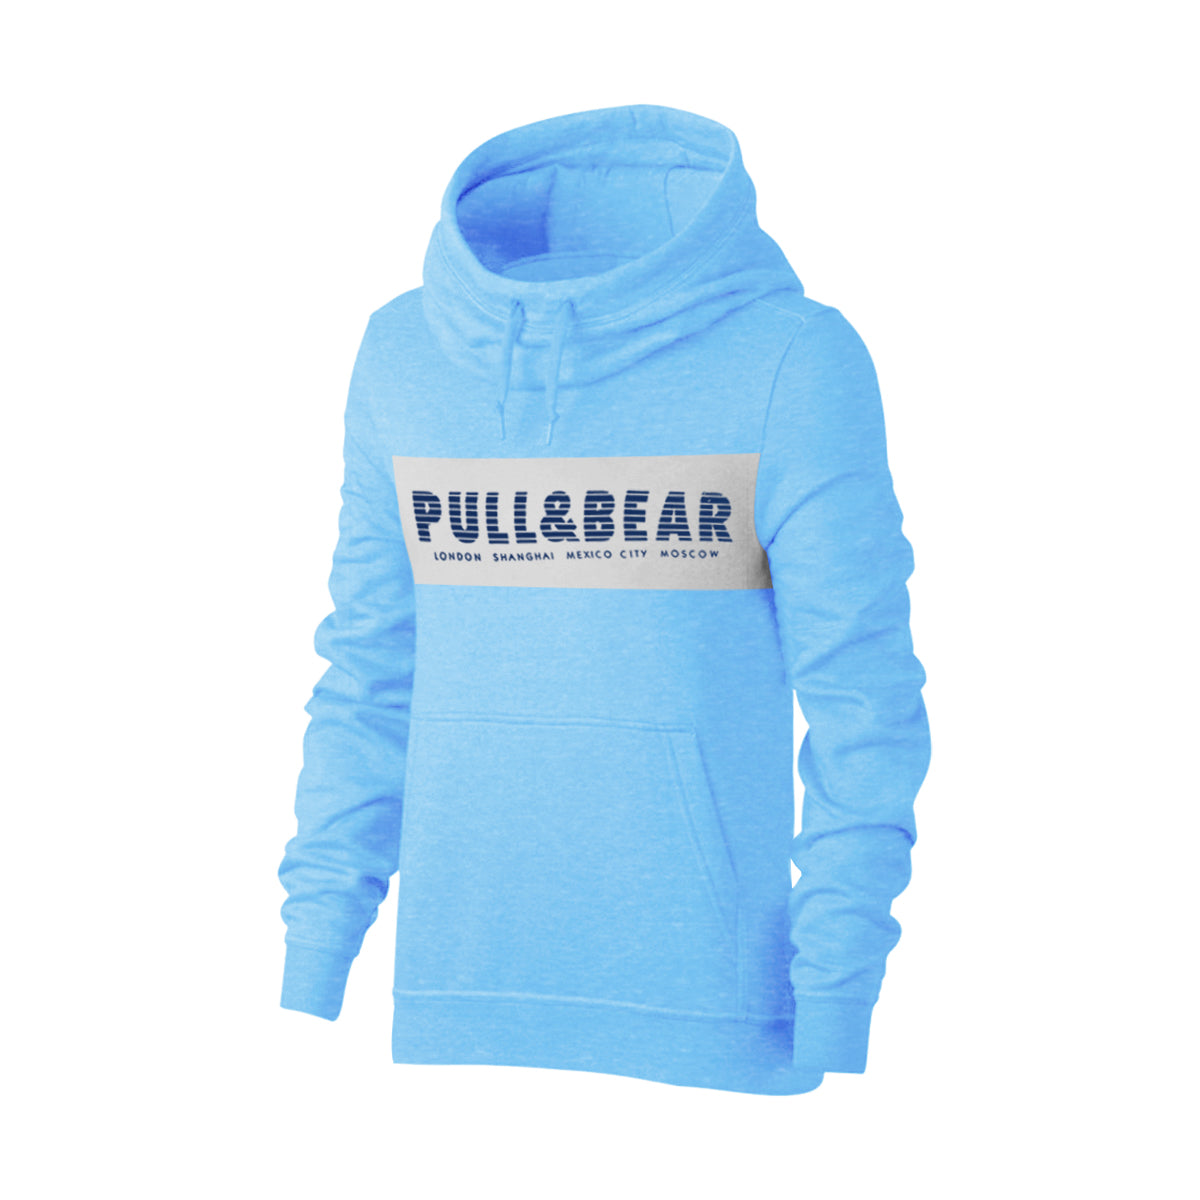 P&B Fleece Pullover Hoodie For Men-Sky Melange With Grey Melange Panel-BE13829